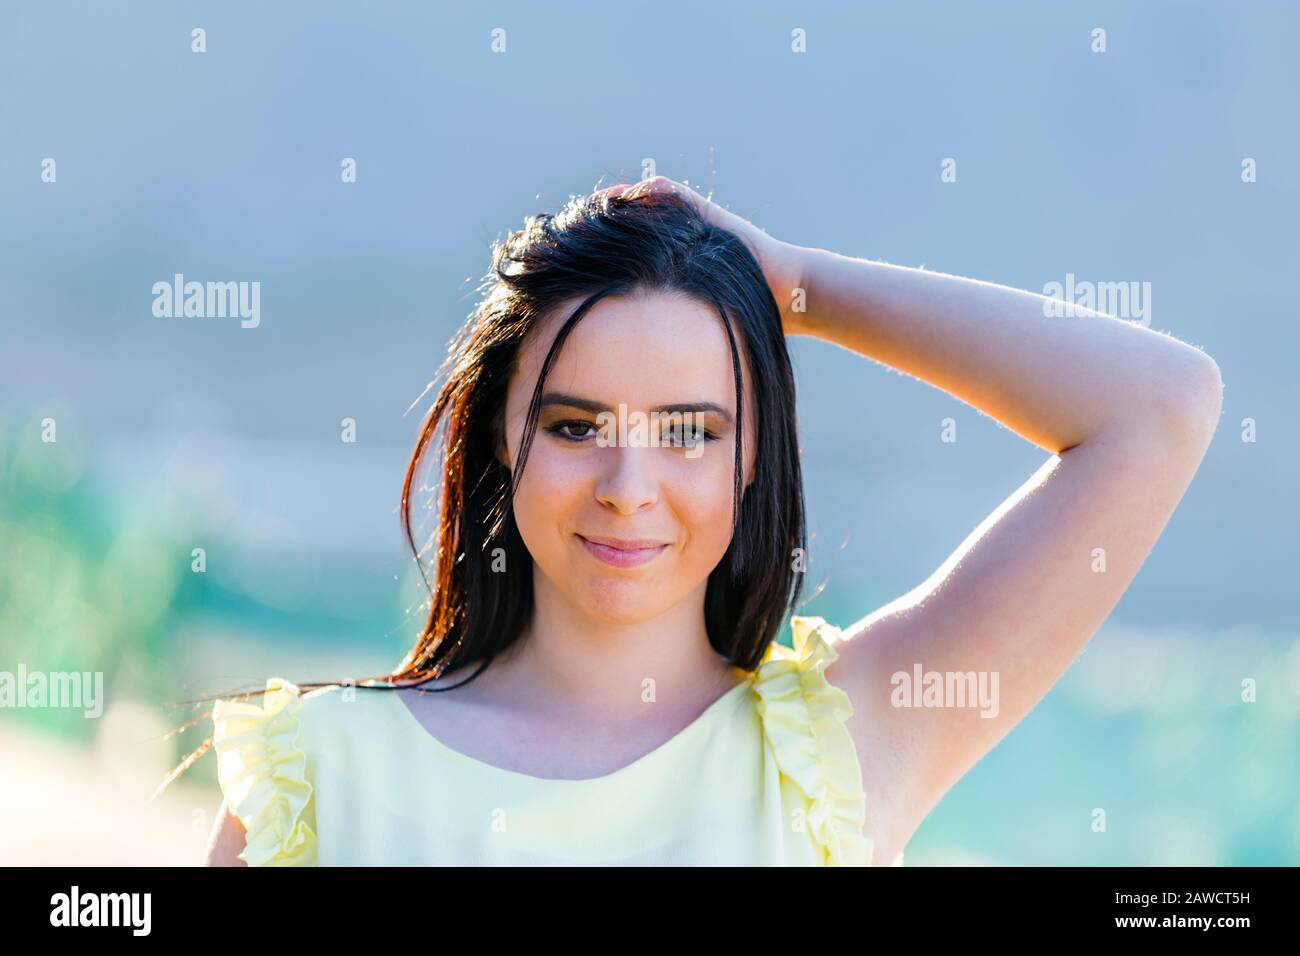 Teen girl portrait backlighted is going to smile looking at camera eyeshot eye eyes contact direct view head and shoulders hand arm behind raised Stock Photo